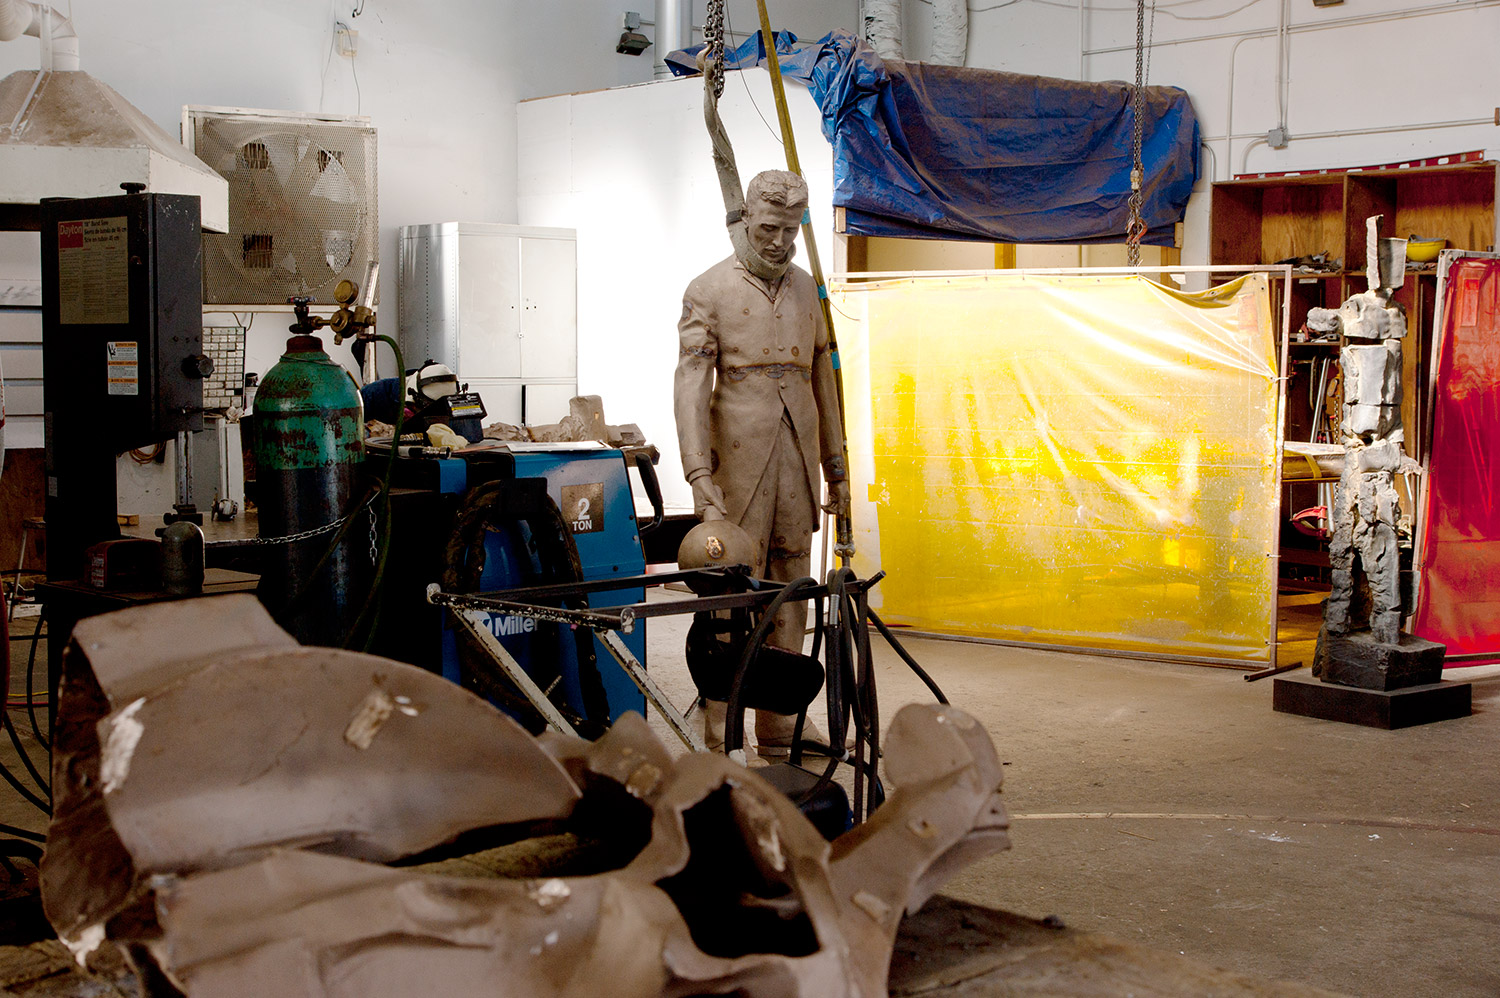 "IT'S ALIVE !! ""A Statue of Nikola Tesla in the Silicon Valley"" is almost done. Bronze cast in pieces, it is spot welded back together waiting for me to check the accuracy of assembly before final welding and chasing."